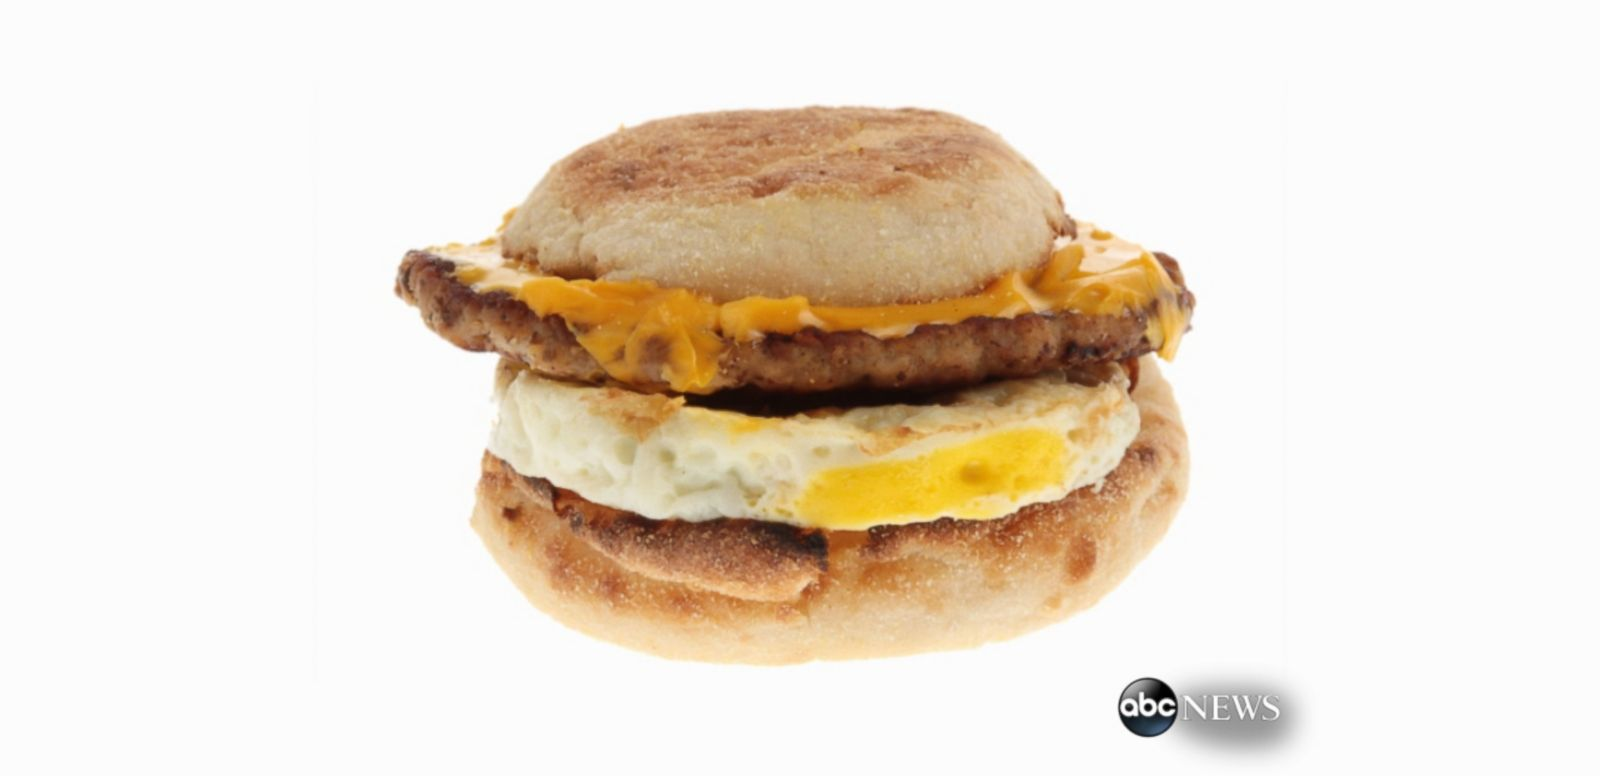 VIDEO: The long-awaited menu for breakfast fans will vary by location.